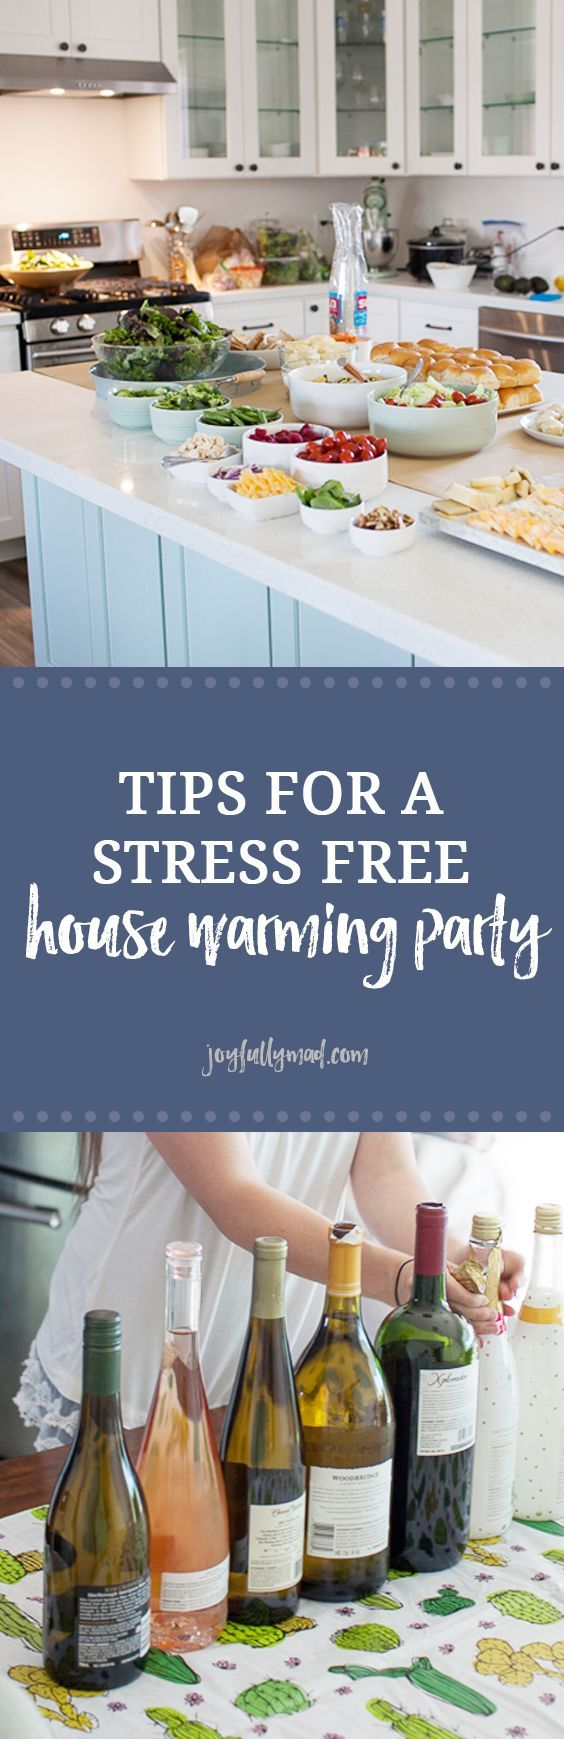 How to Host a Stress Free Housewarming Party   Stress free, Meals ...